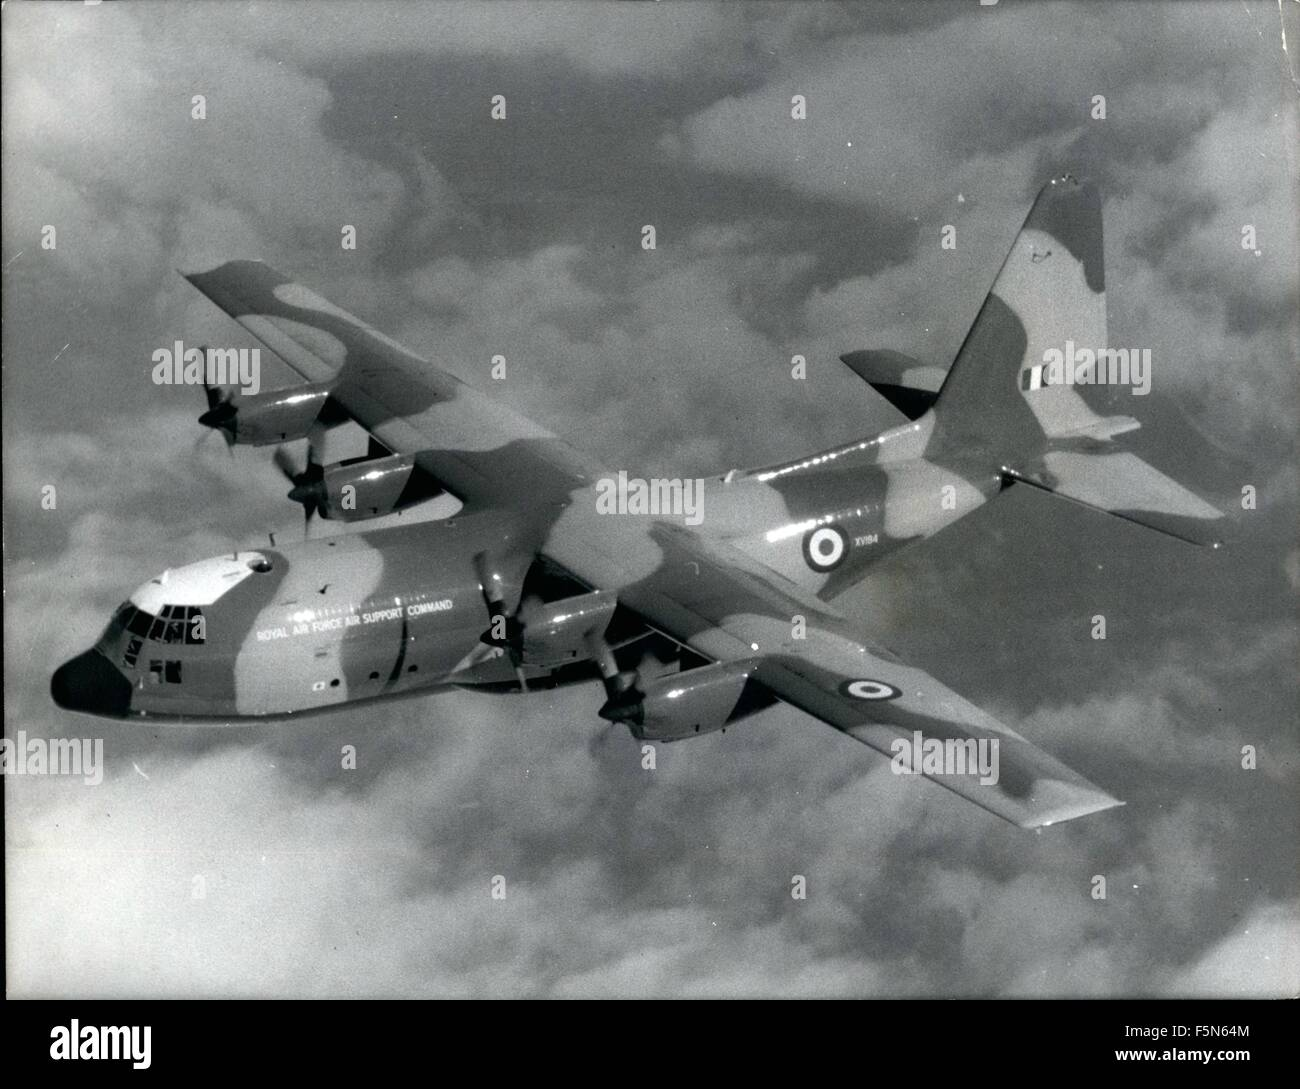 September 26, 1967 - Hercules enters R.A.F. Squadron Service Stock Photo -  Alamy